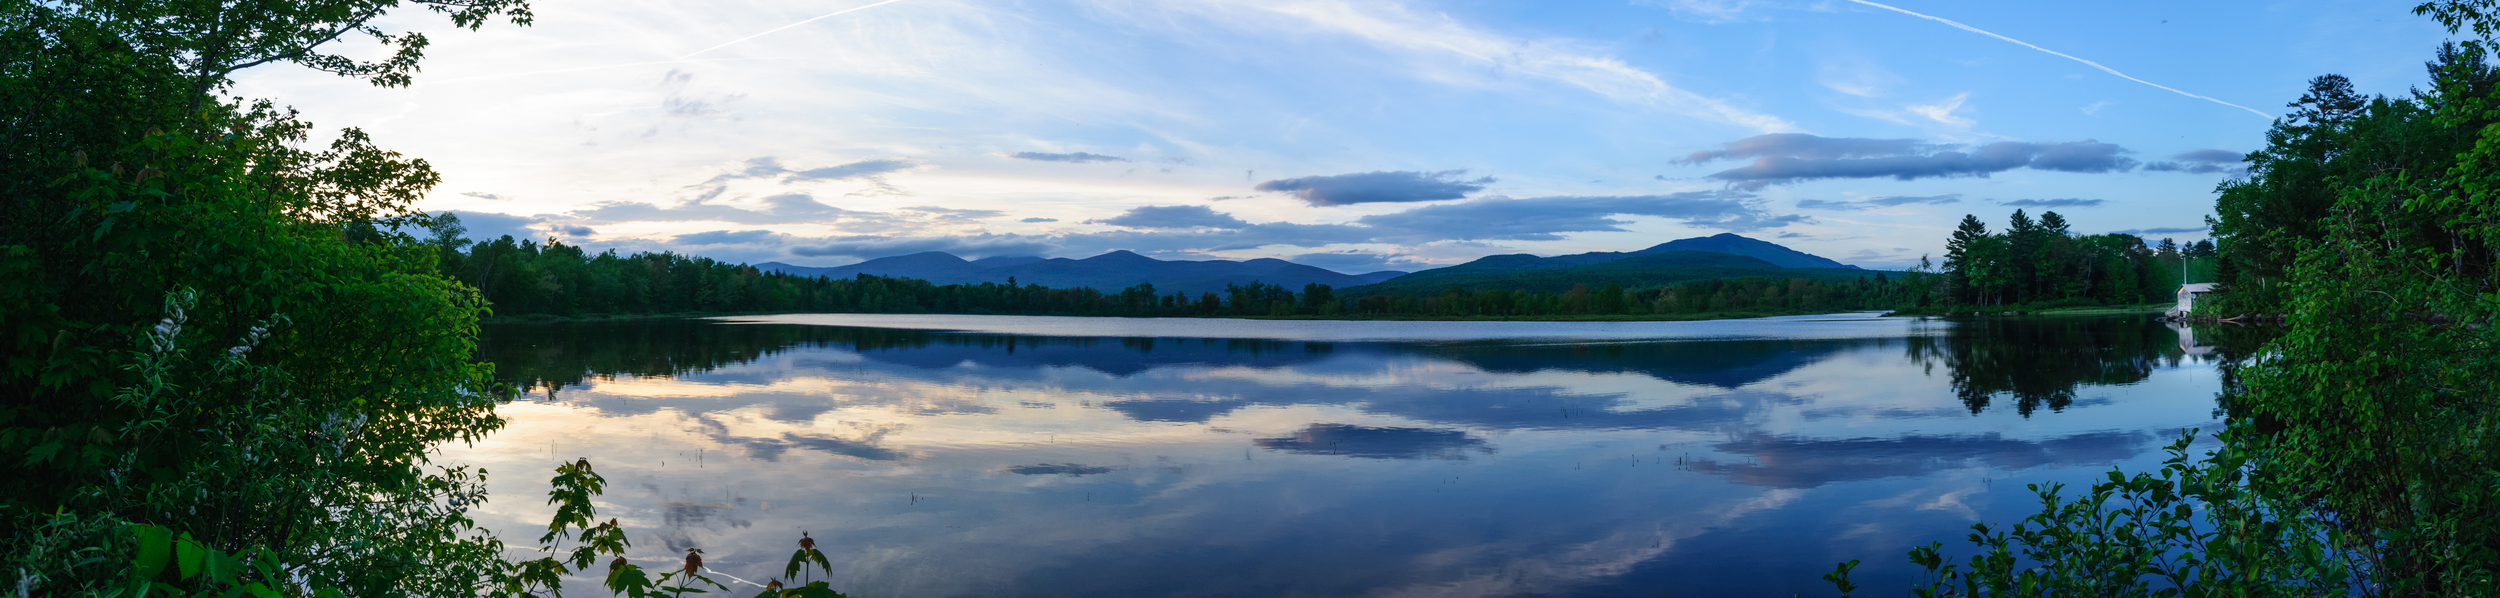 I shared a photo of Silver Lake earlier this week in my post  Ask Good Questions  and have been working on this larger panoramic view. I captured this image after a fantastic hike at Gulf Hagas, Maine USA. One of the best parts was having the trail to myself for hours of quiet exploration and creation.